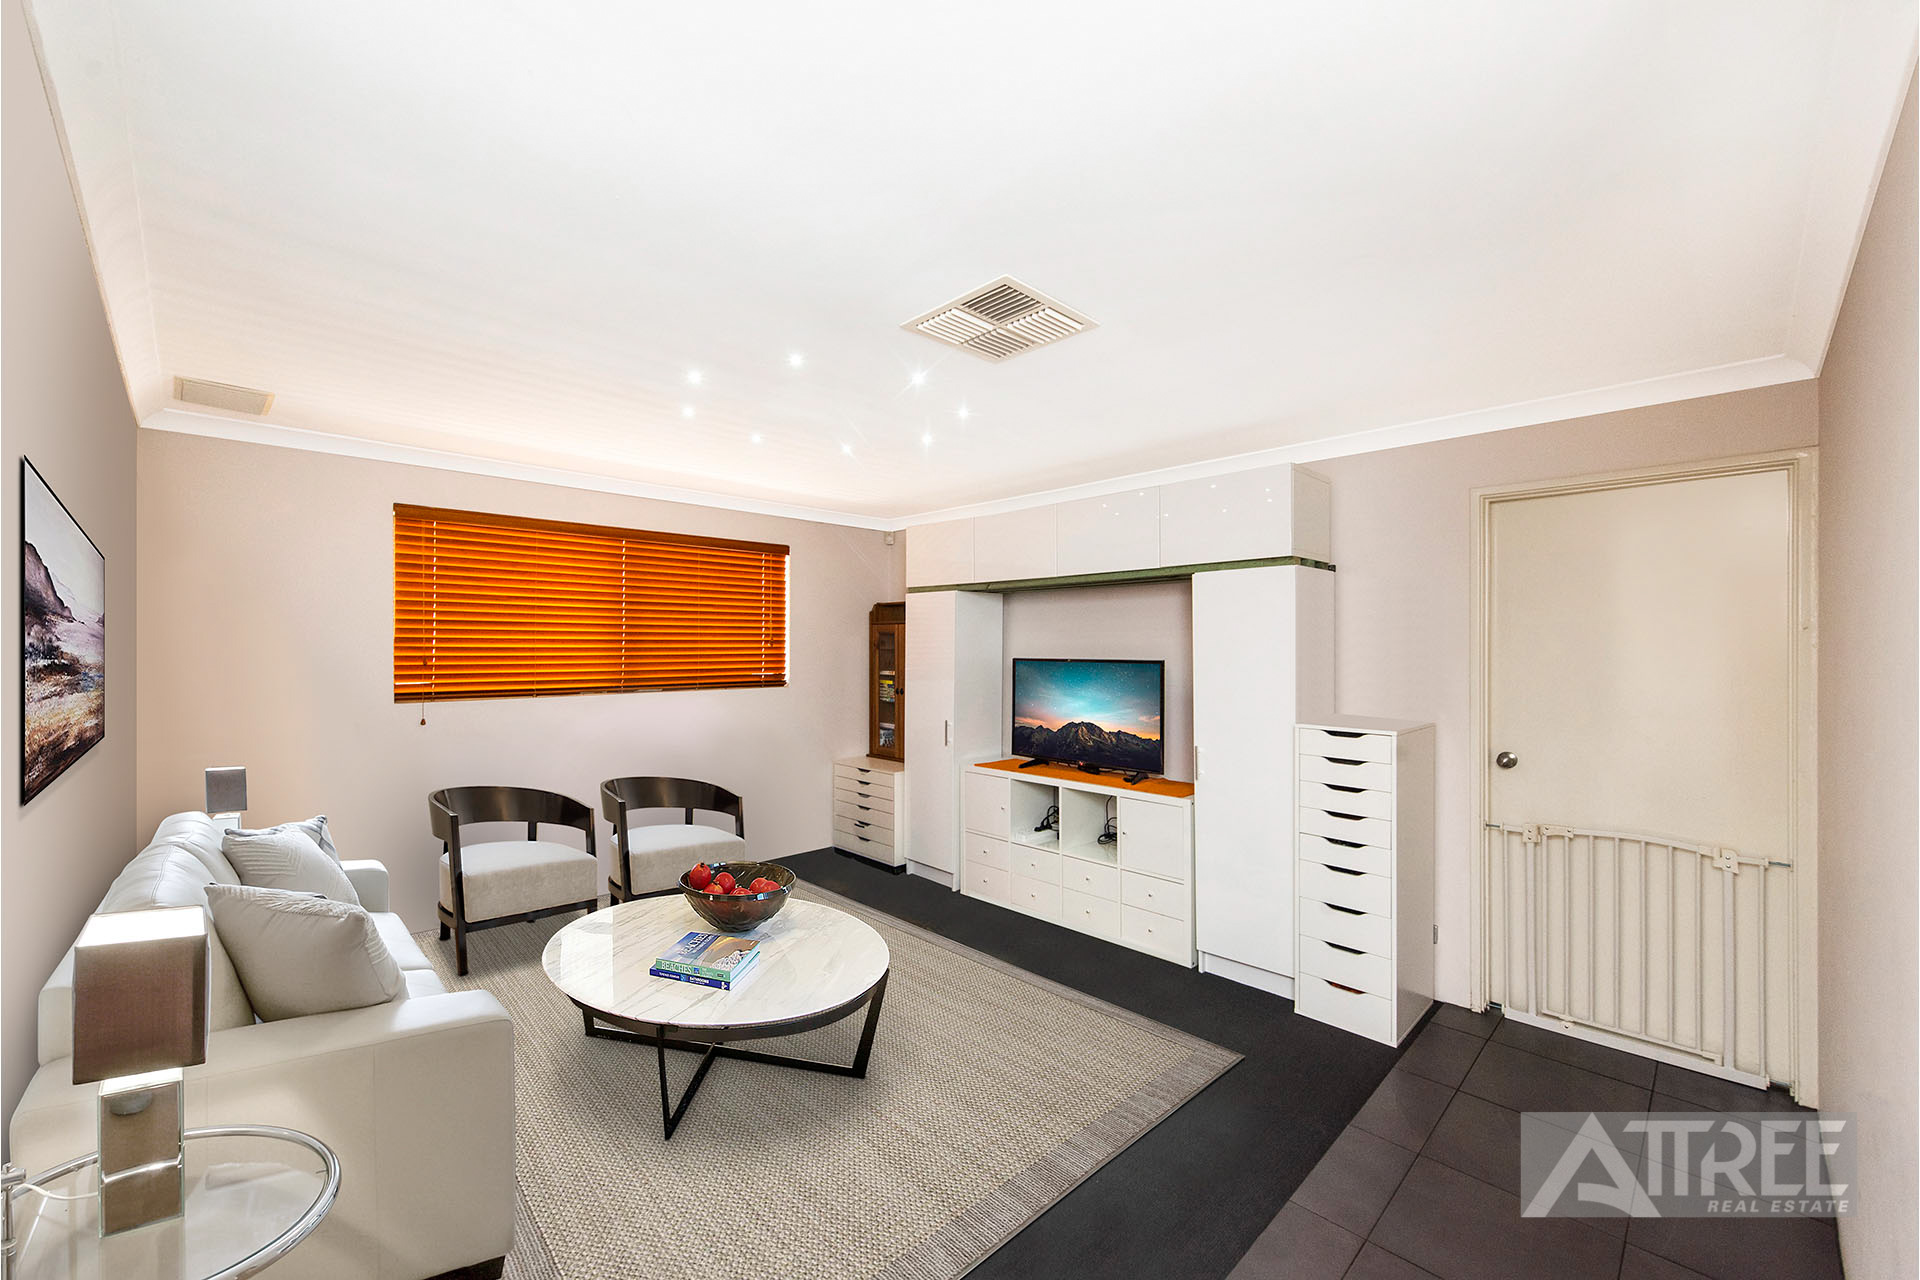 Property for sale in HARRISDALE, 10 Binnia Mews : Attree Real Estate